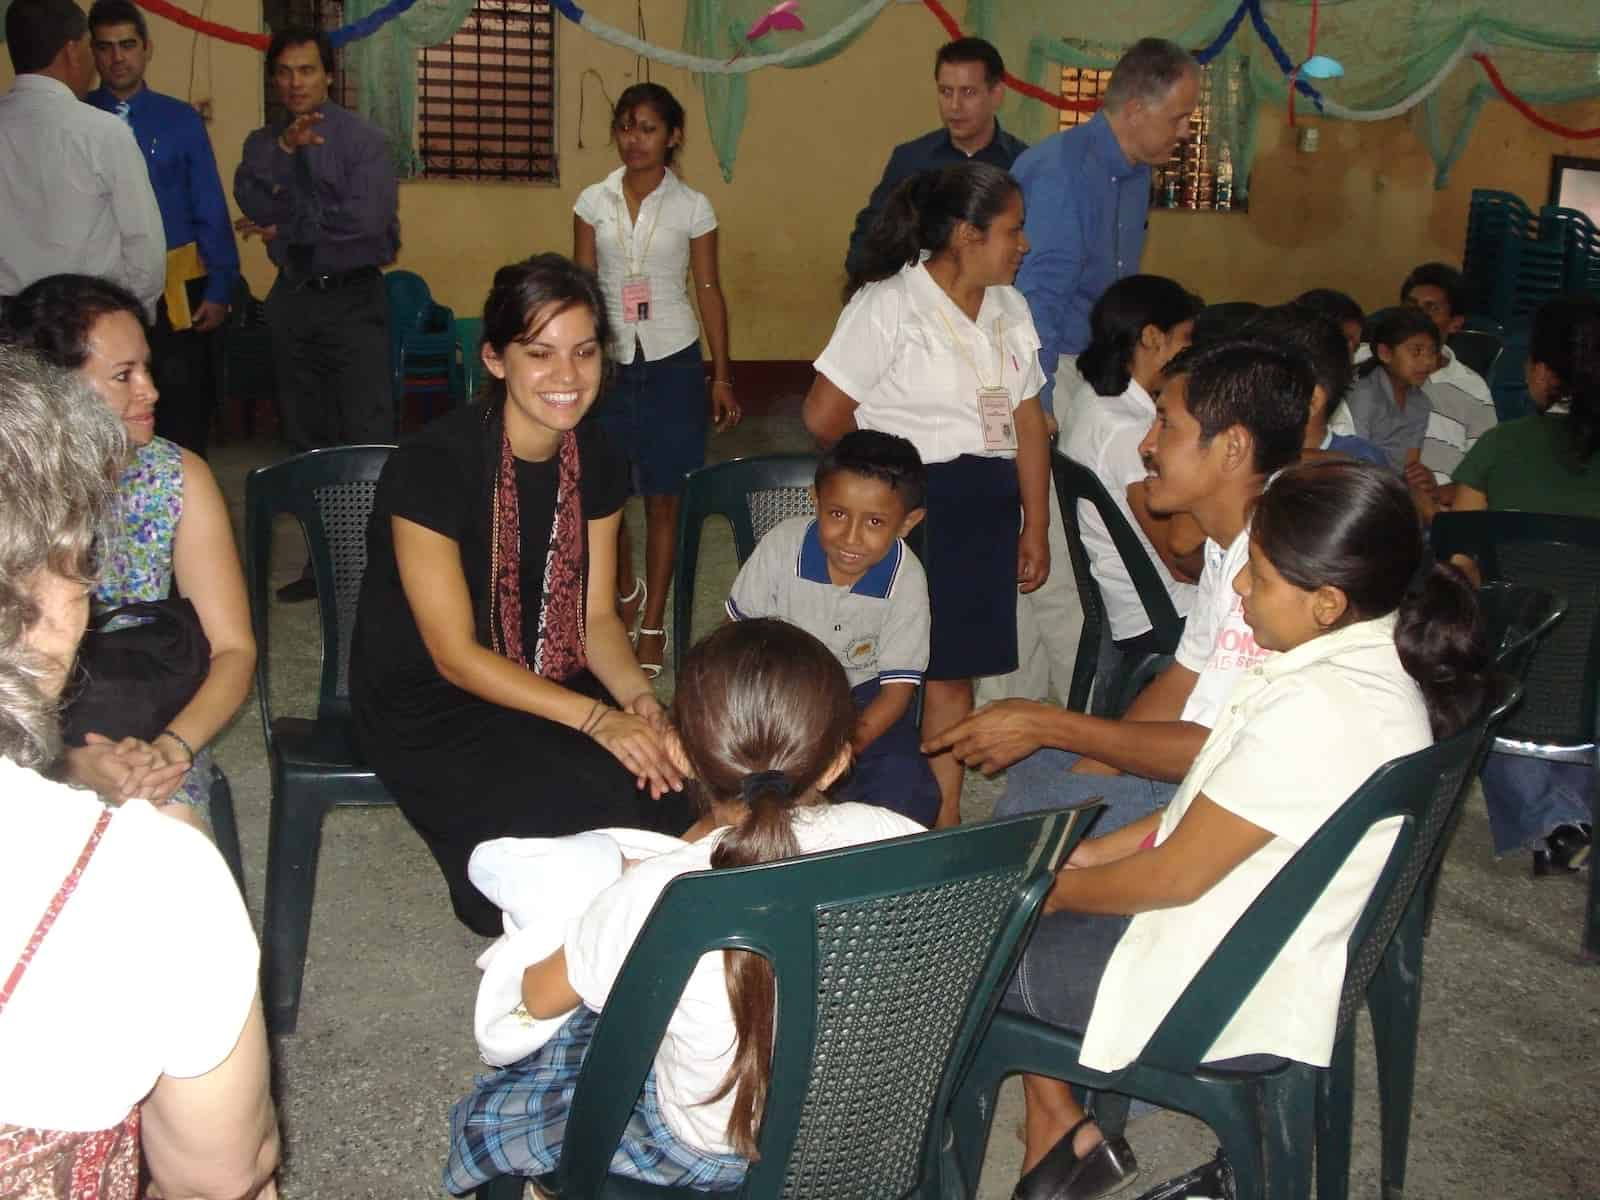 A girl sits in a circle of chairs, talking to children inside a church room.